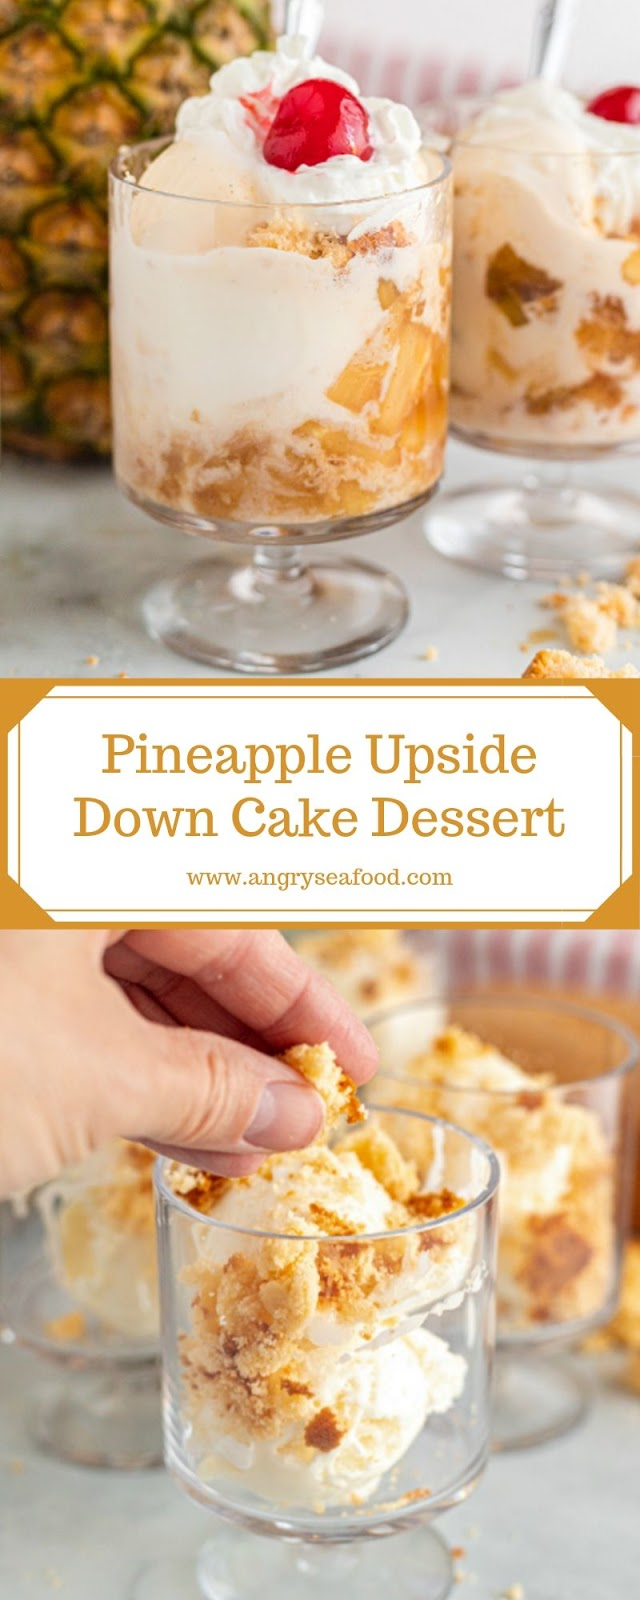 Pineapple Upside Down Cake Dessert